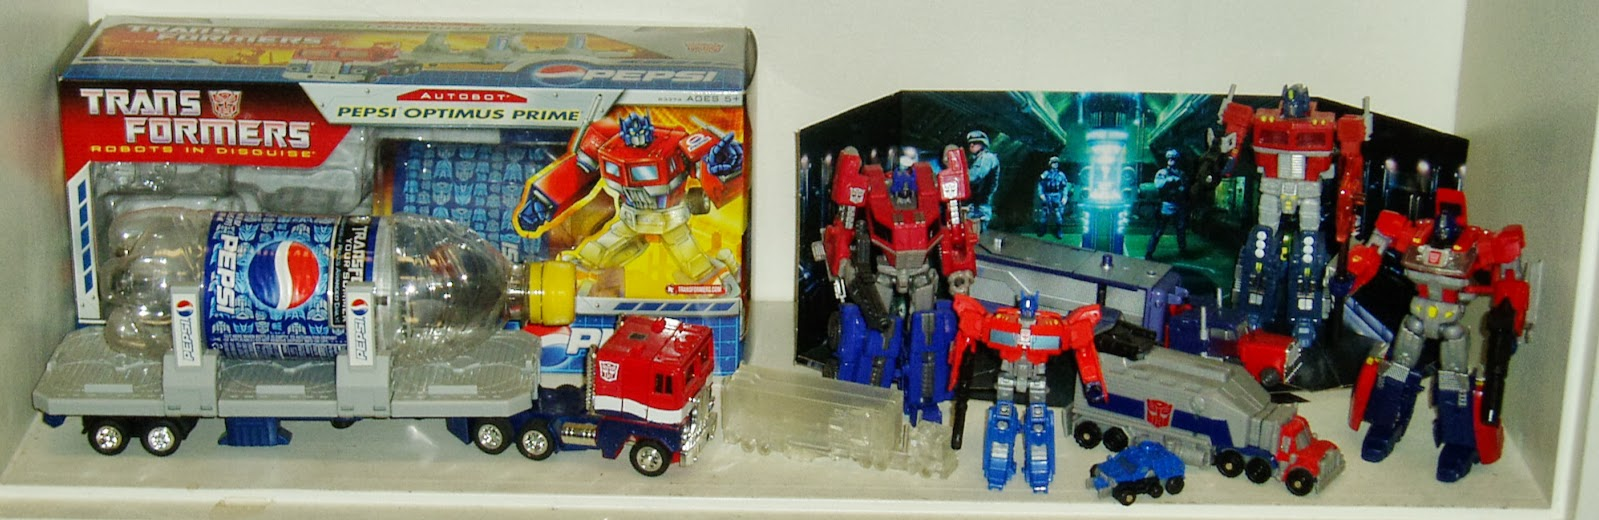 archetypes optimus prime The autobots are a combination of typical superhero team archetypes fearless leader optimus, action girl arcee, gentle giant bulkhead, and such  optimus prime.